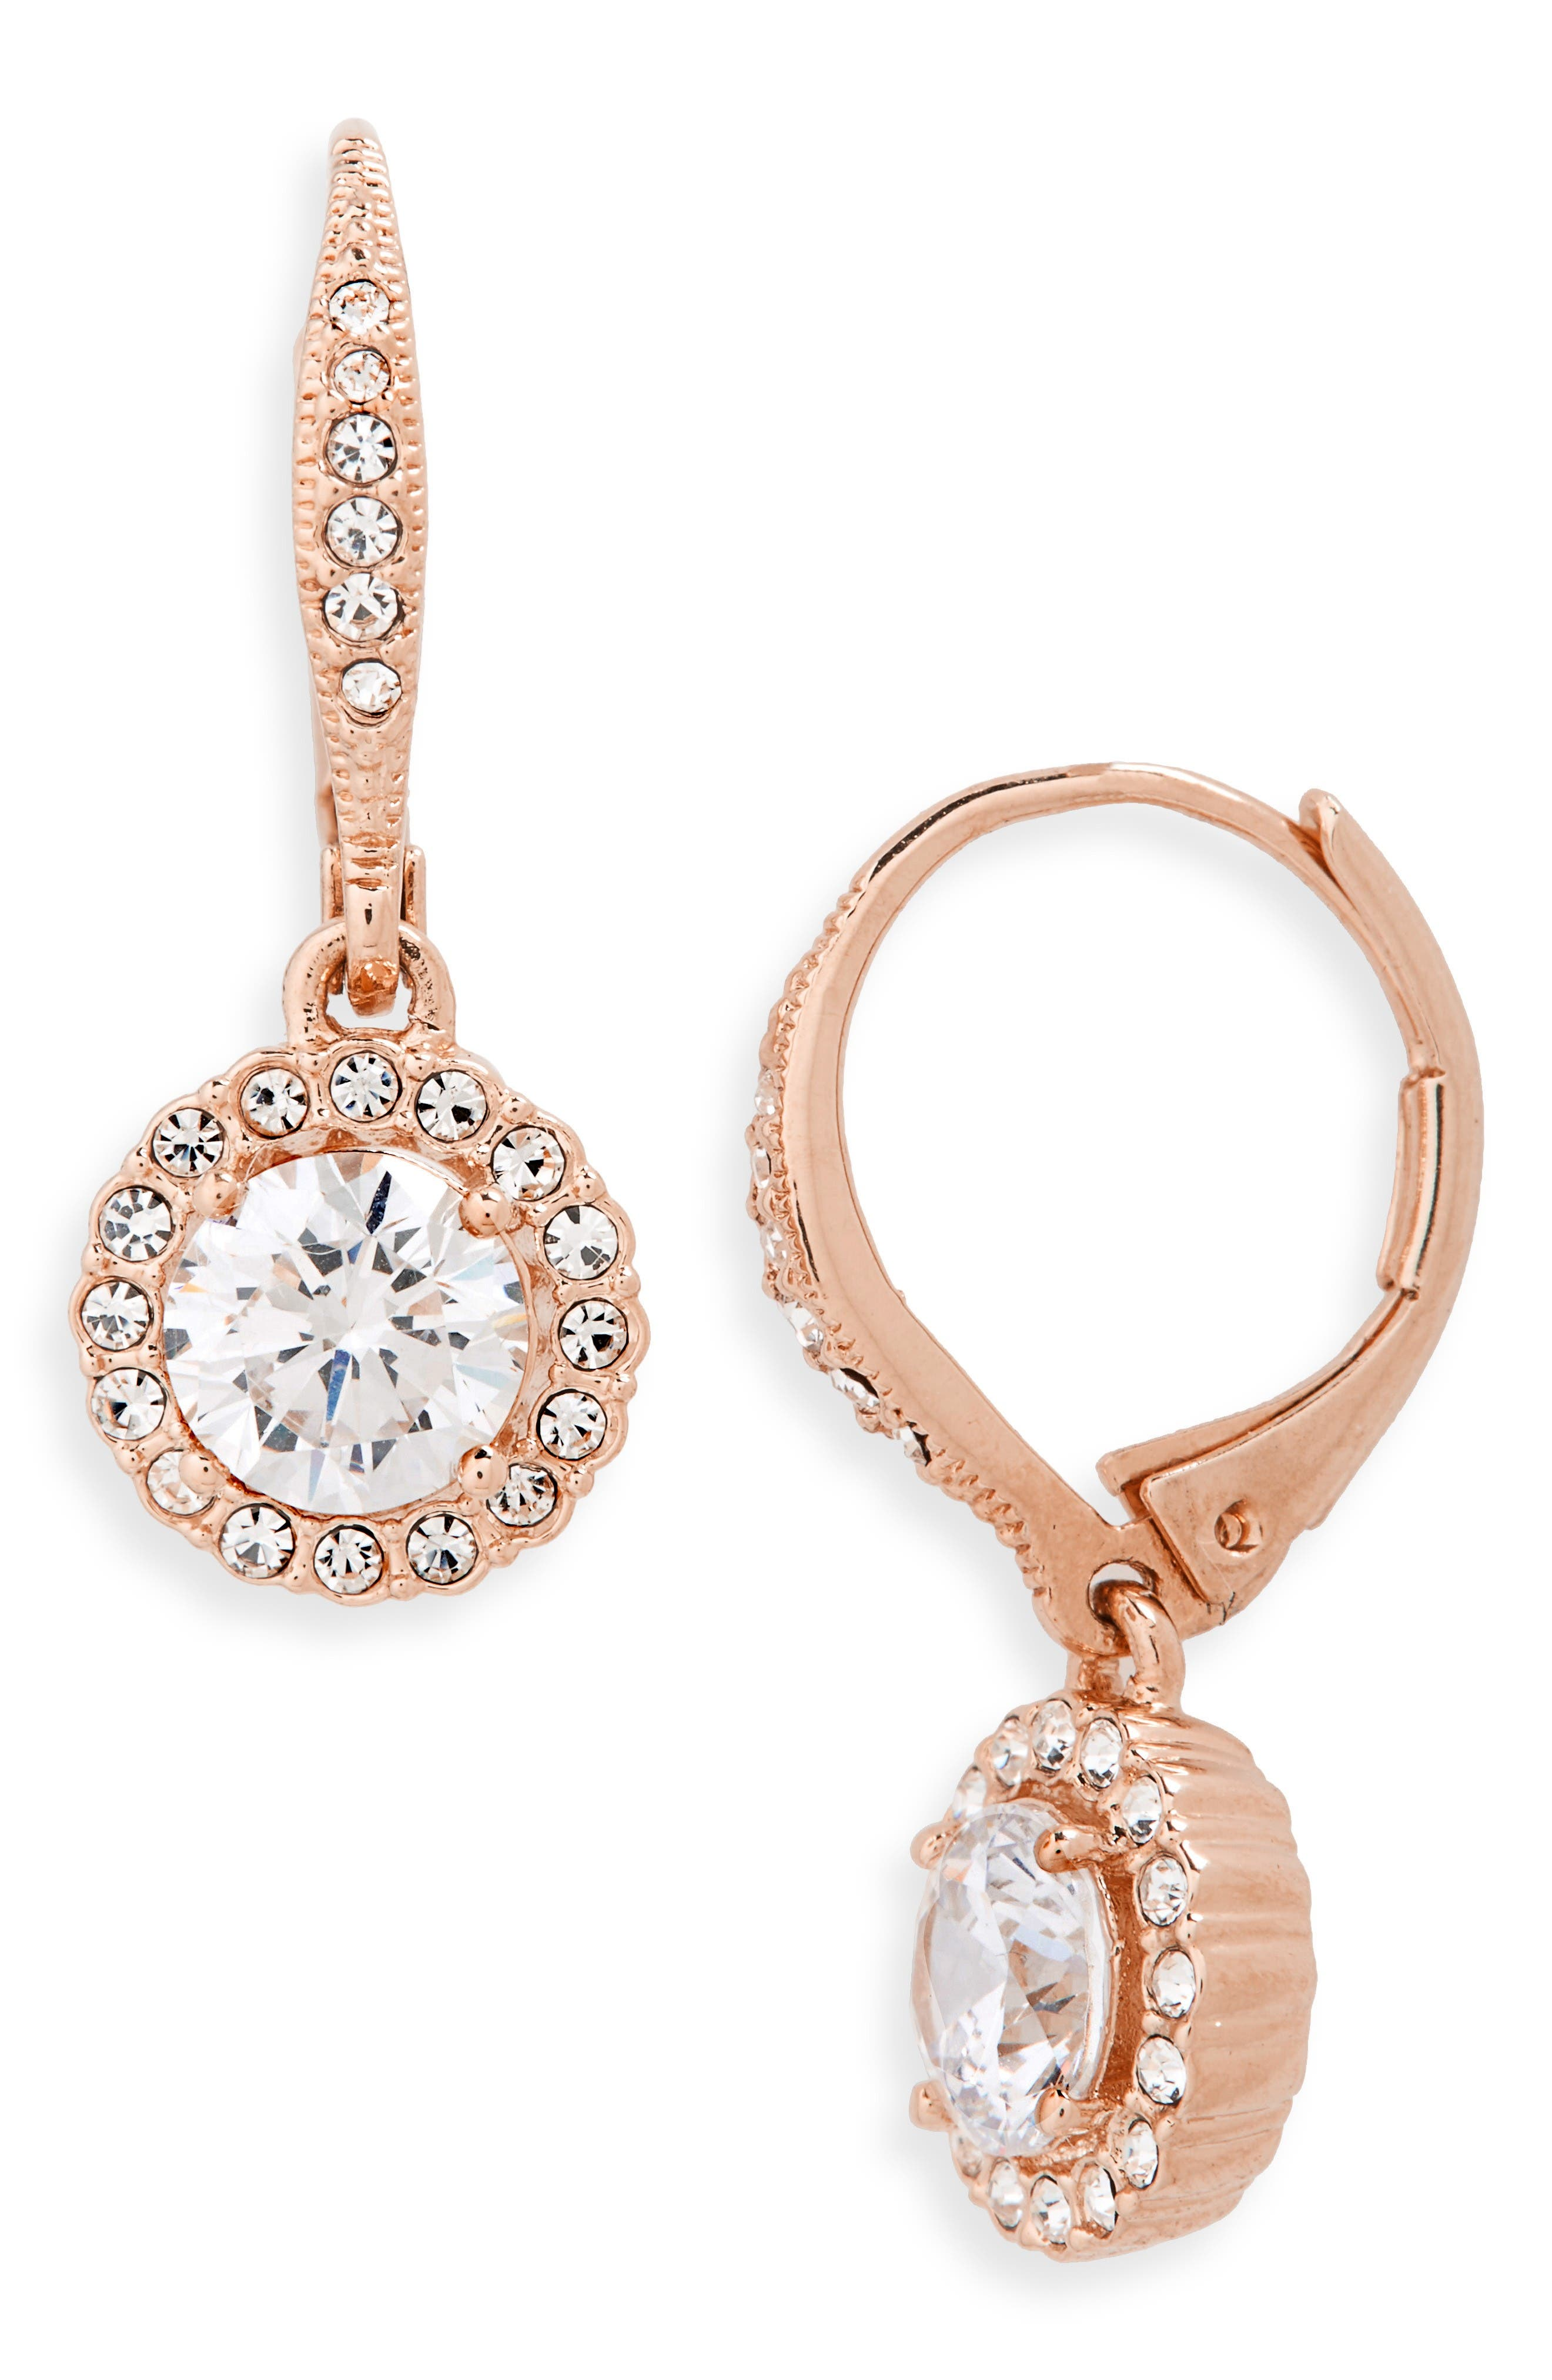 Cubic Zirconia Drop Earrings,                             Main thumbnail 1, color,                             Rose Gold/ Clear Crystal